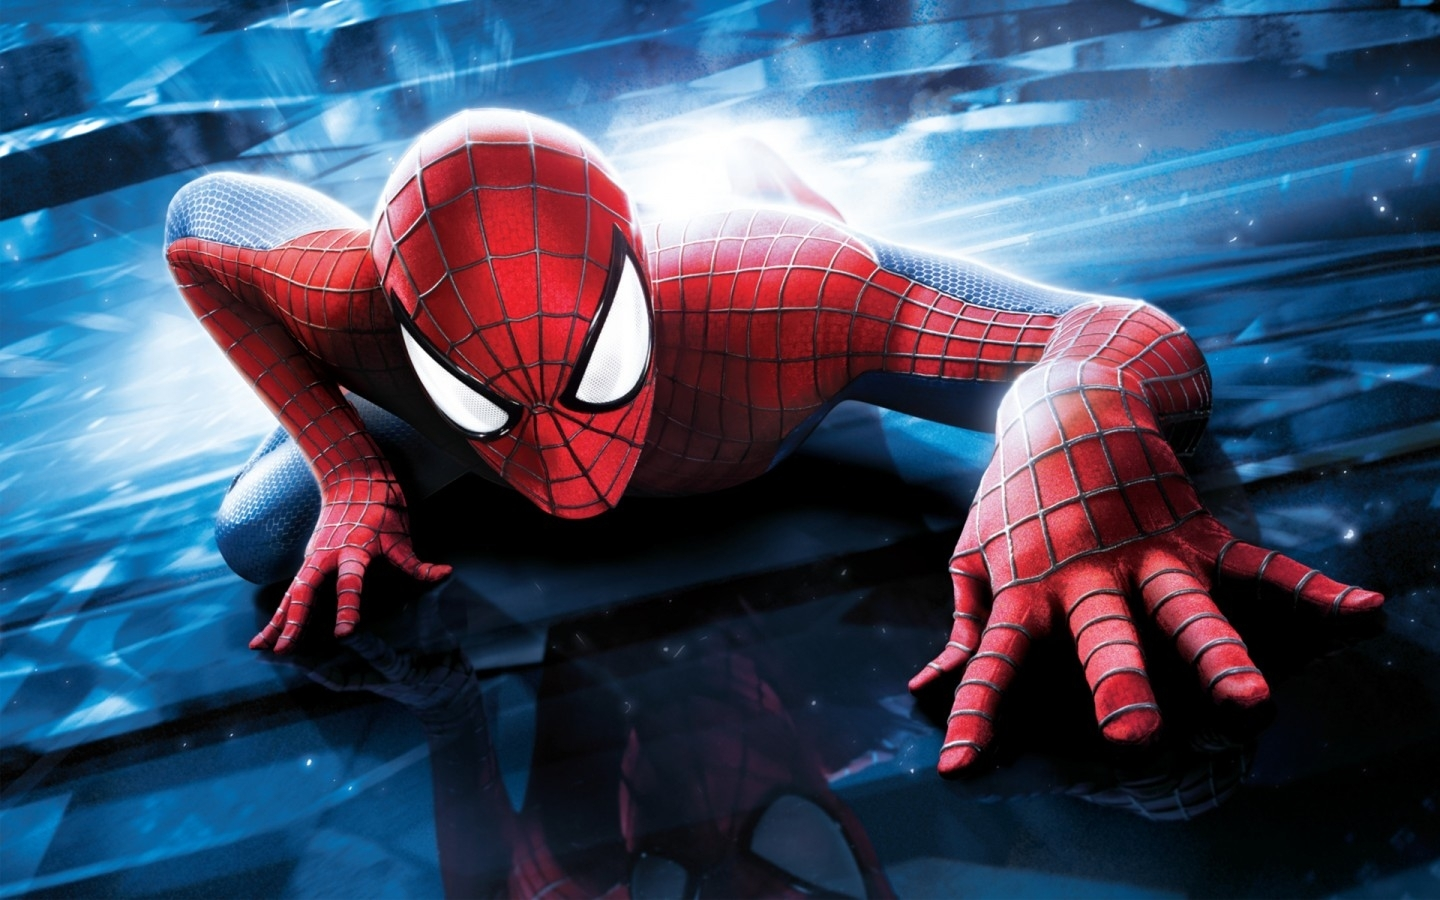 spiderman hd new wallpaper in high resolution wide free | wallpapers